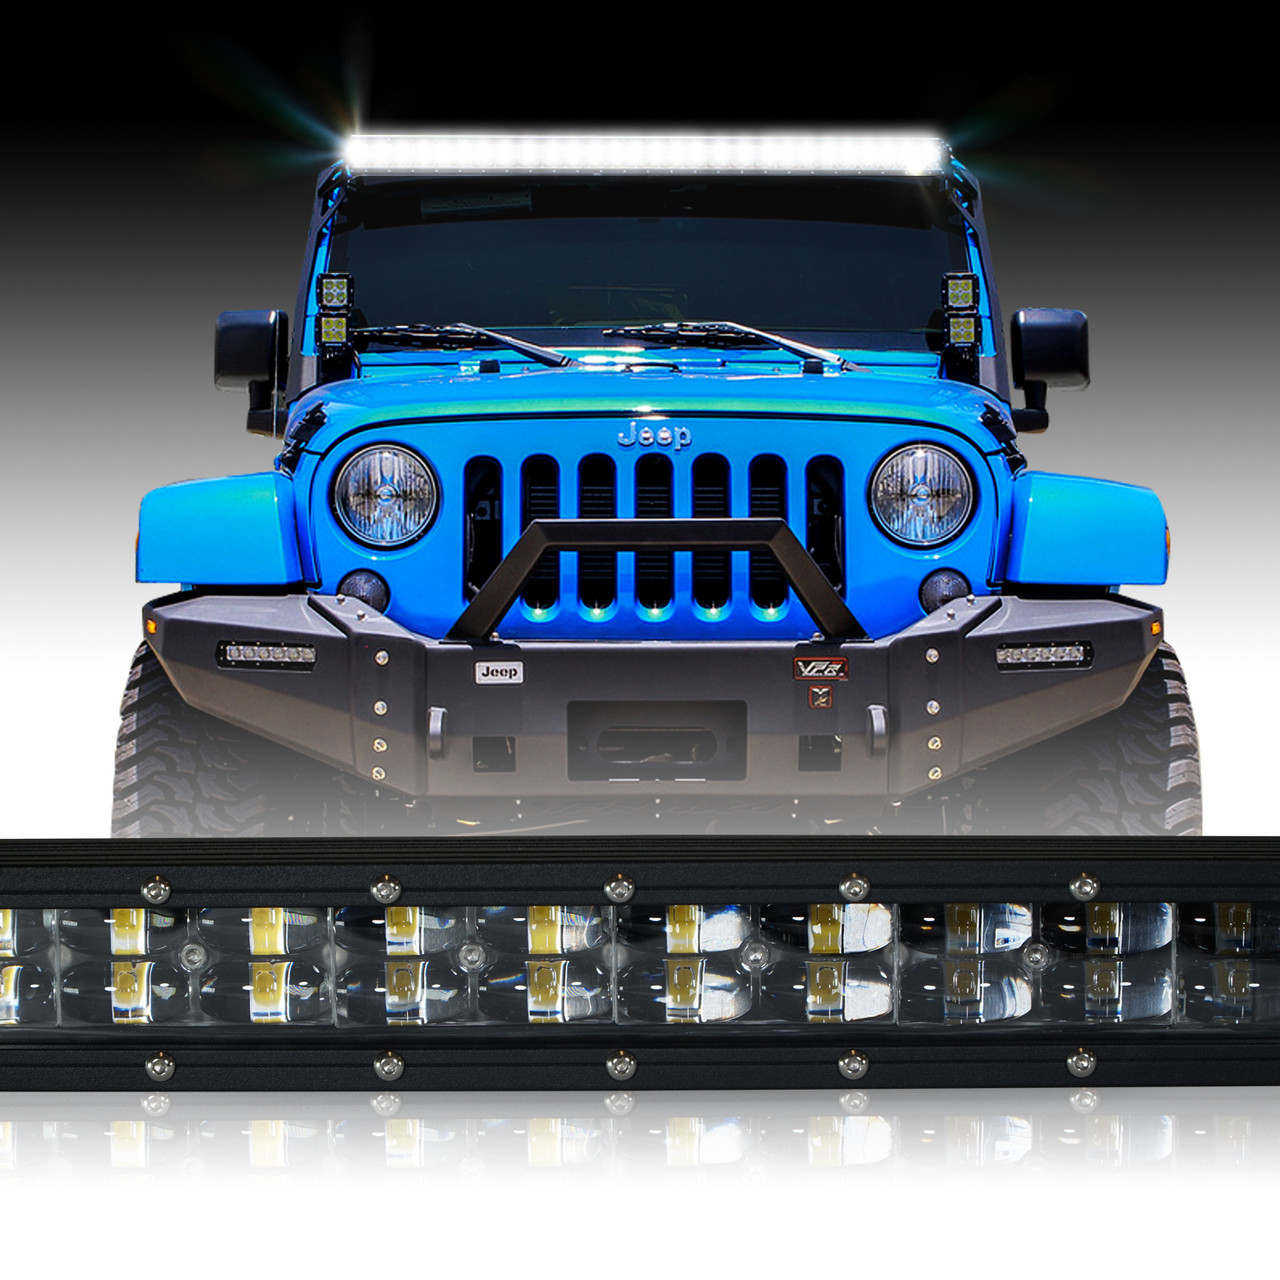 led light bar 288w 50 inches bracket wiring harness kit for wrangler jk 2007 2017 [ 1280 x 1280 Pixel ]